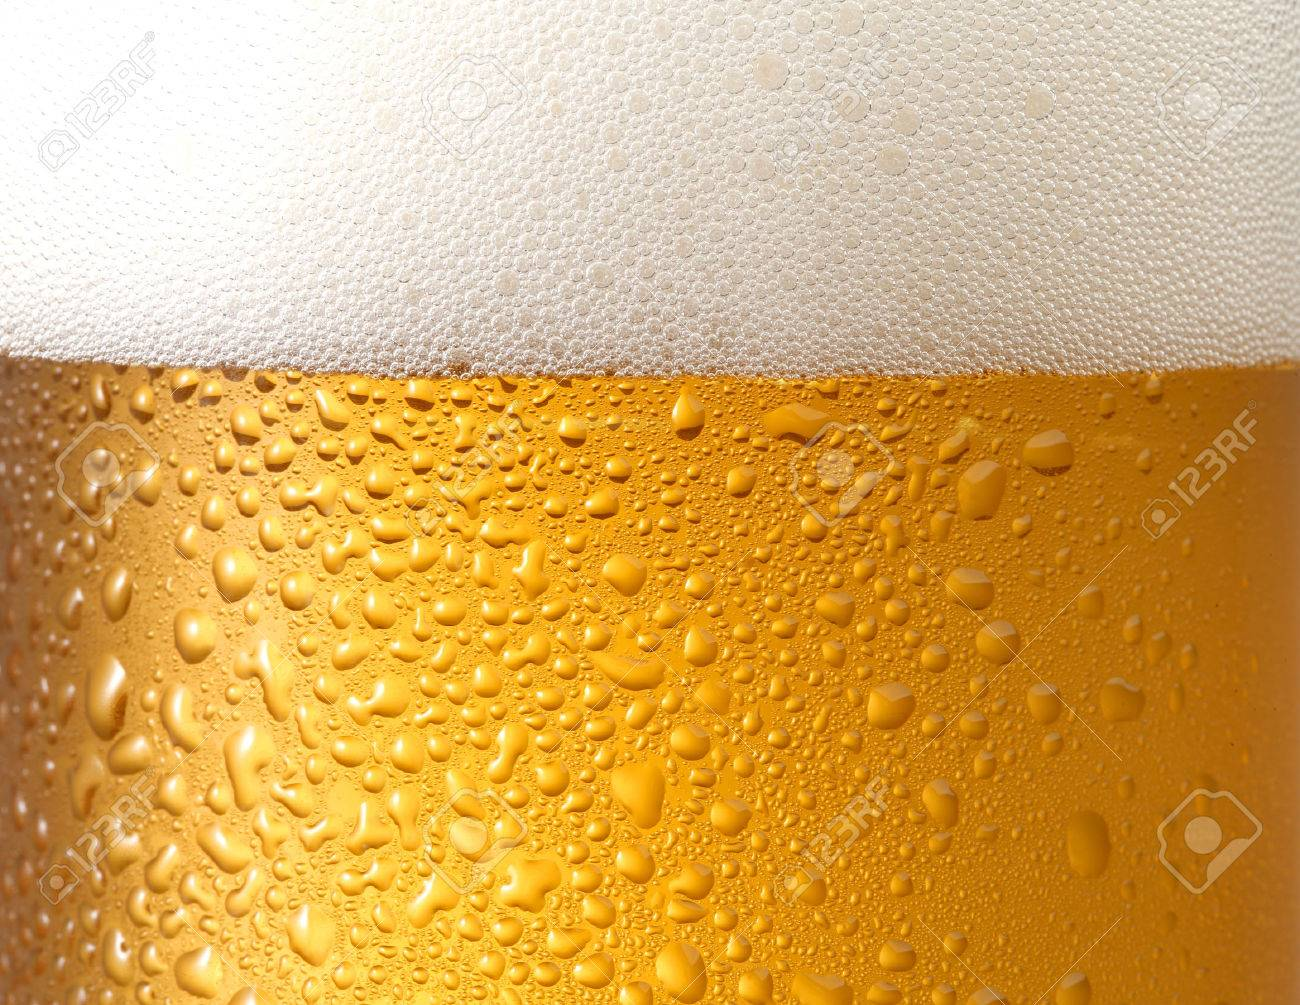 background beer with foam and bubbles? - 60034359